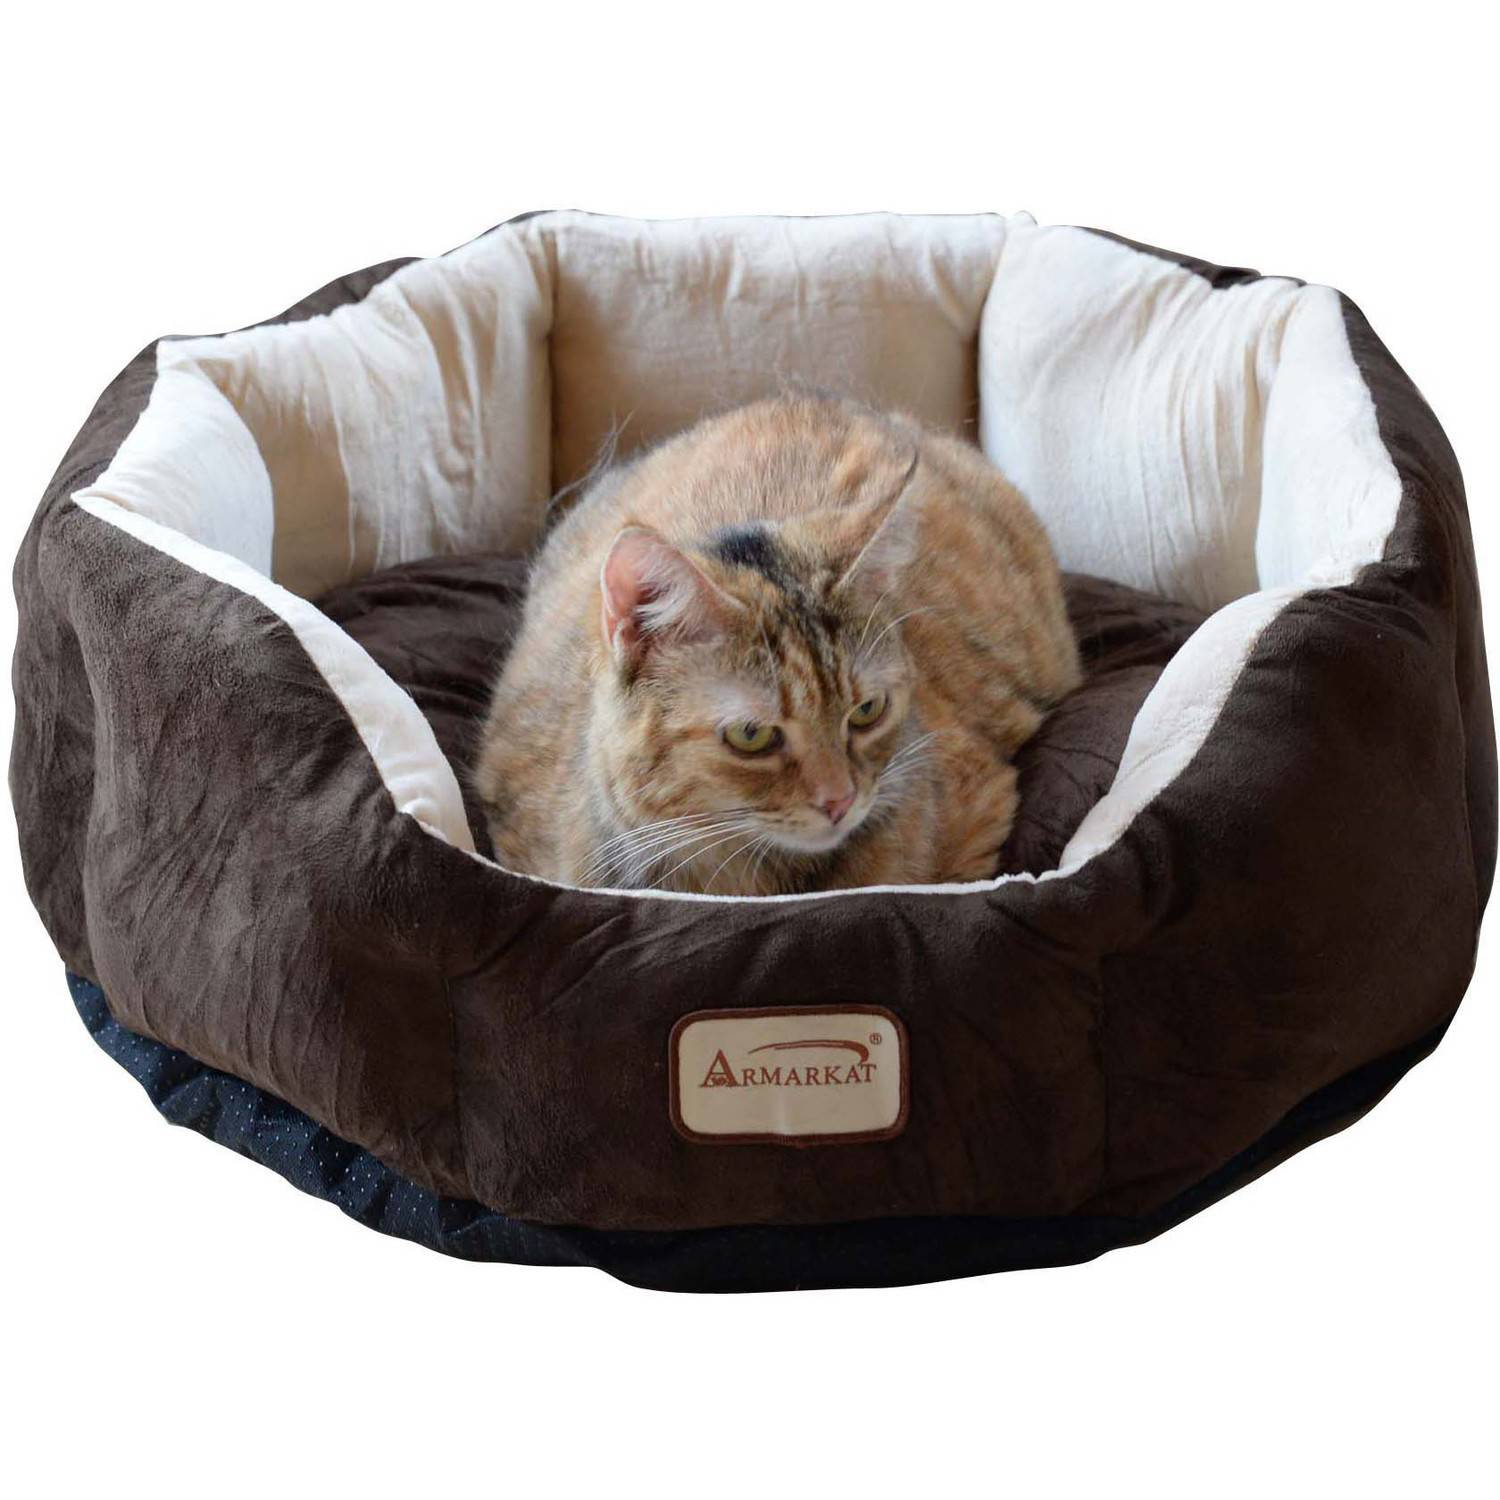 Armarkat Cozy Pet Bed , Mocha and Beige